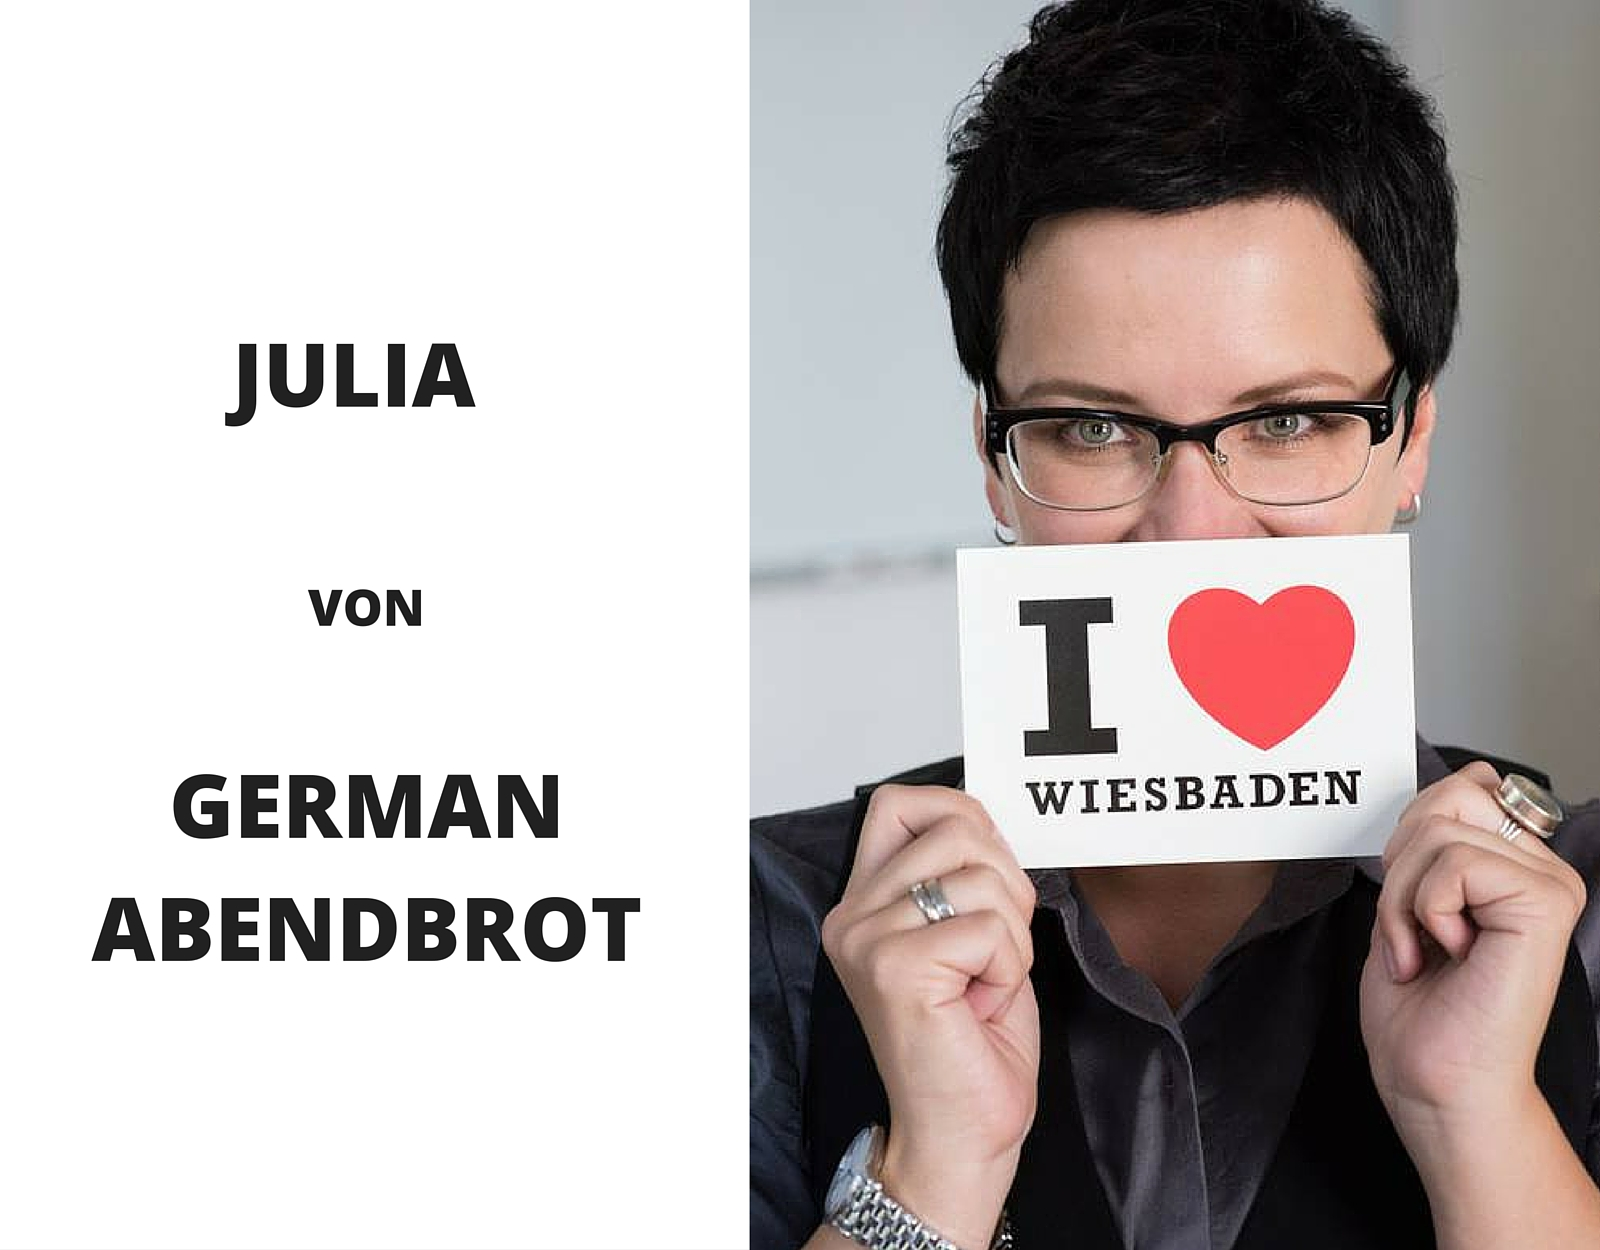 JULIA VON GERMAN ABENDBROT {meet the blogger} I www.blogchicks.de